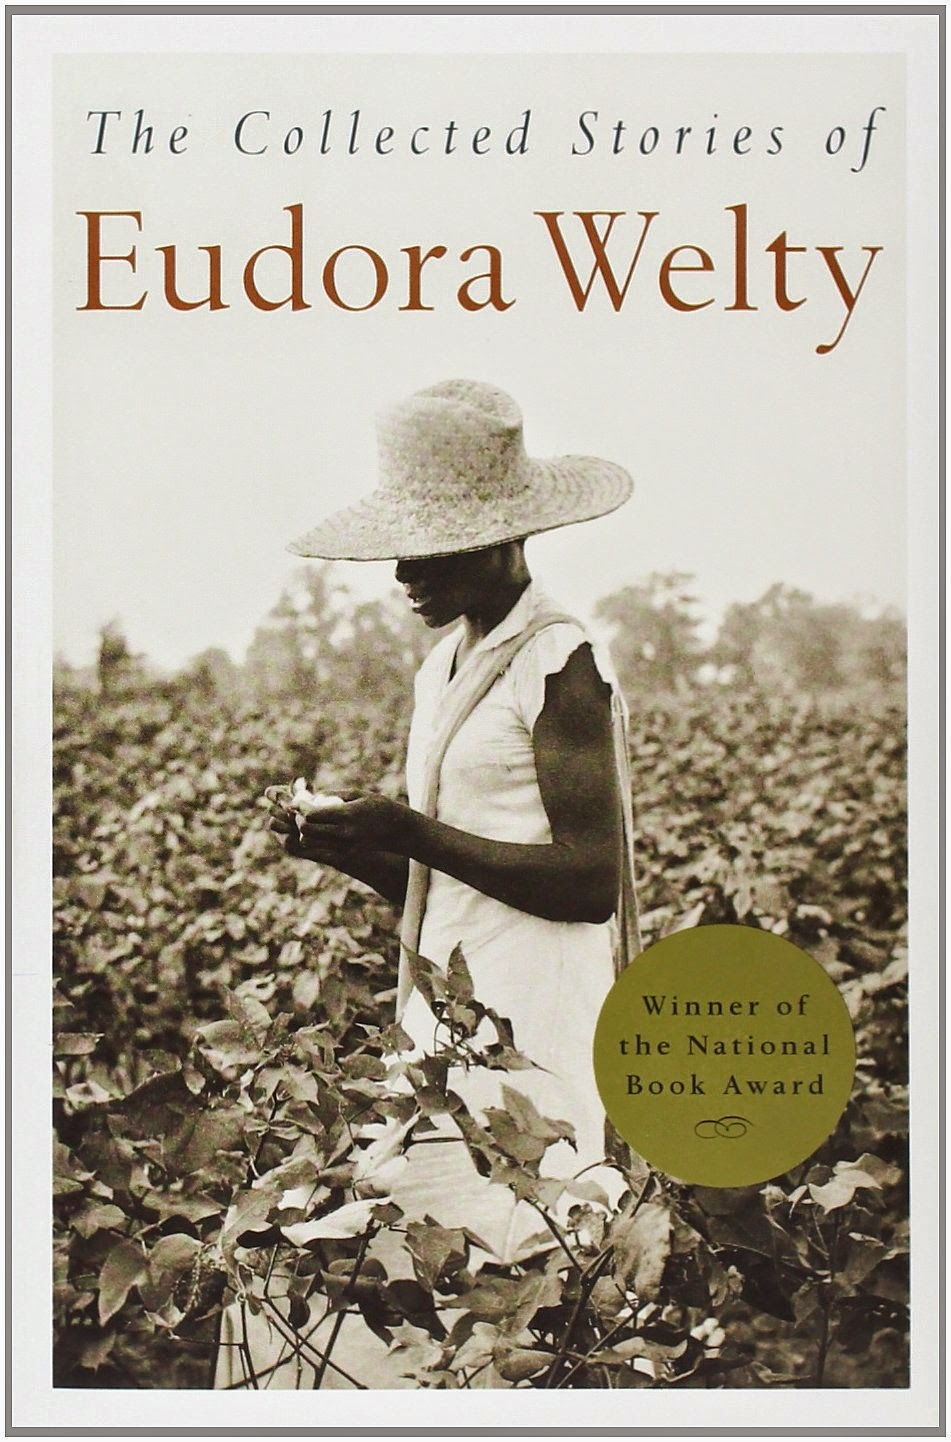 a worn path short story A worn path ~ a classic american short story by eudora welty (1909-2001) it was december—a bright frozen day in the early morning far out in the country there was.